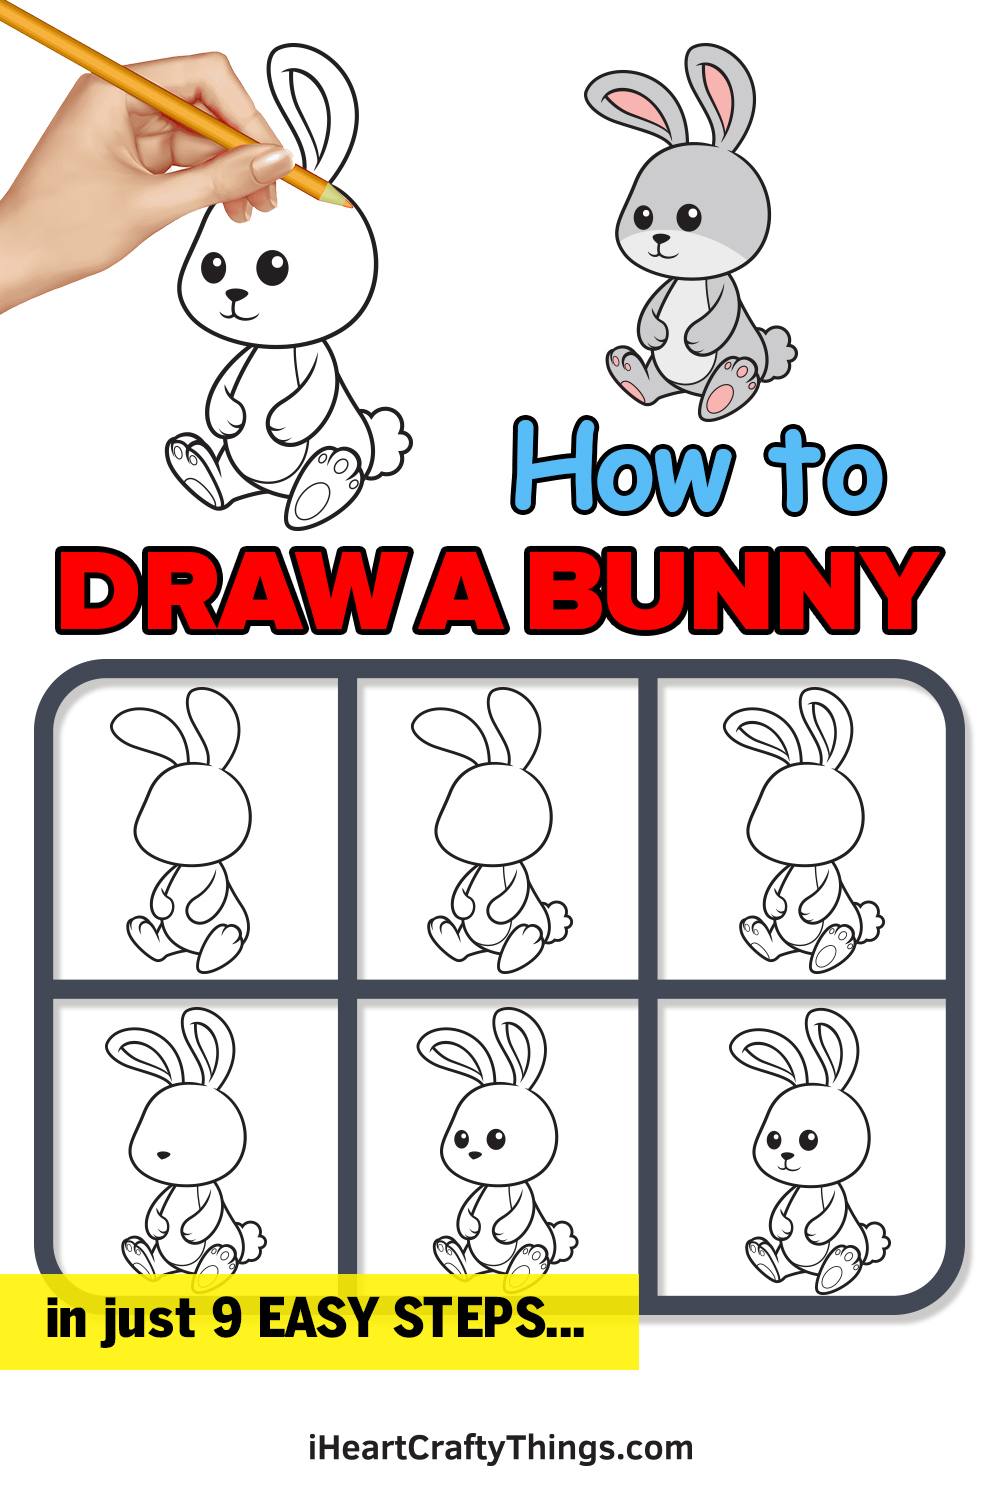 How to Draw a Bunny in 9 Steps